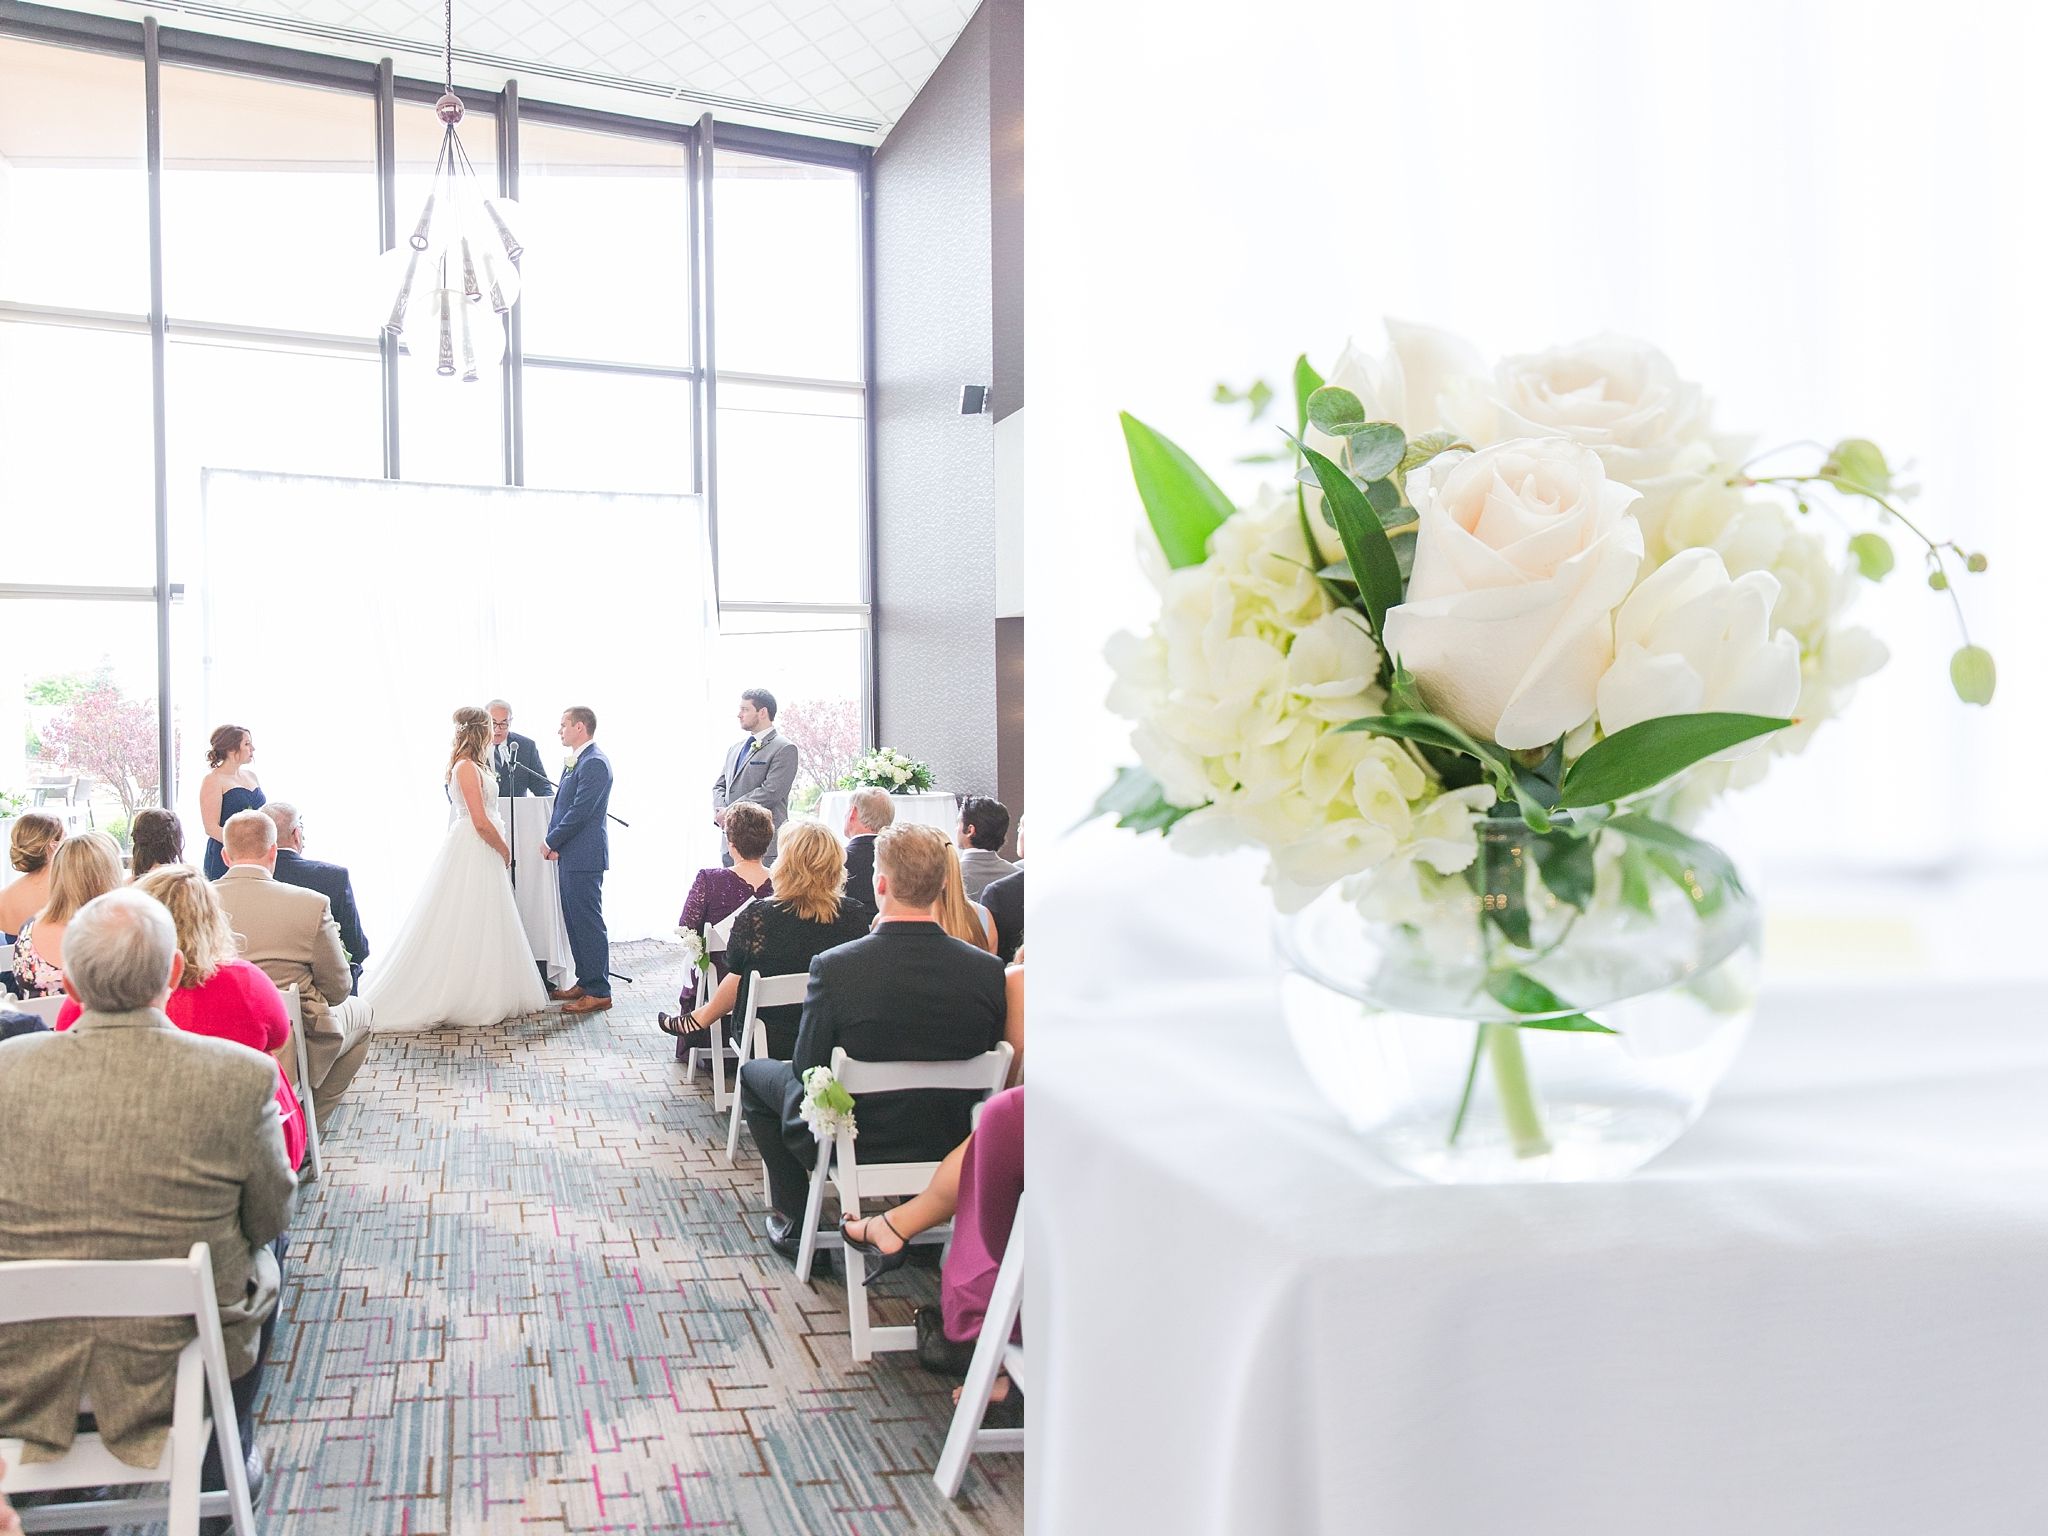 joyful-candid-laid-back-wedding-photos-in-ann-arbor-michigan-and-at-the-eagle-crest-golf-resort-by-courtney-carolyn-photography_0070.jpg